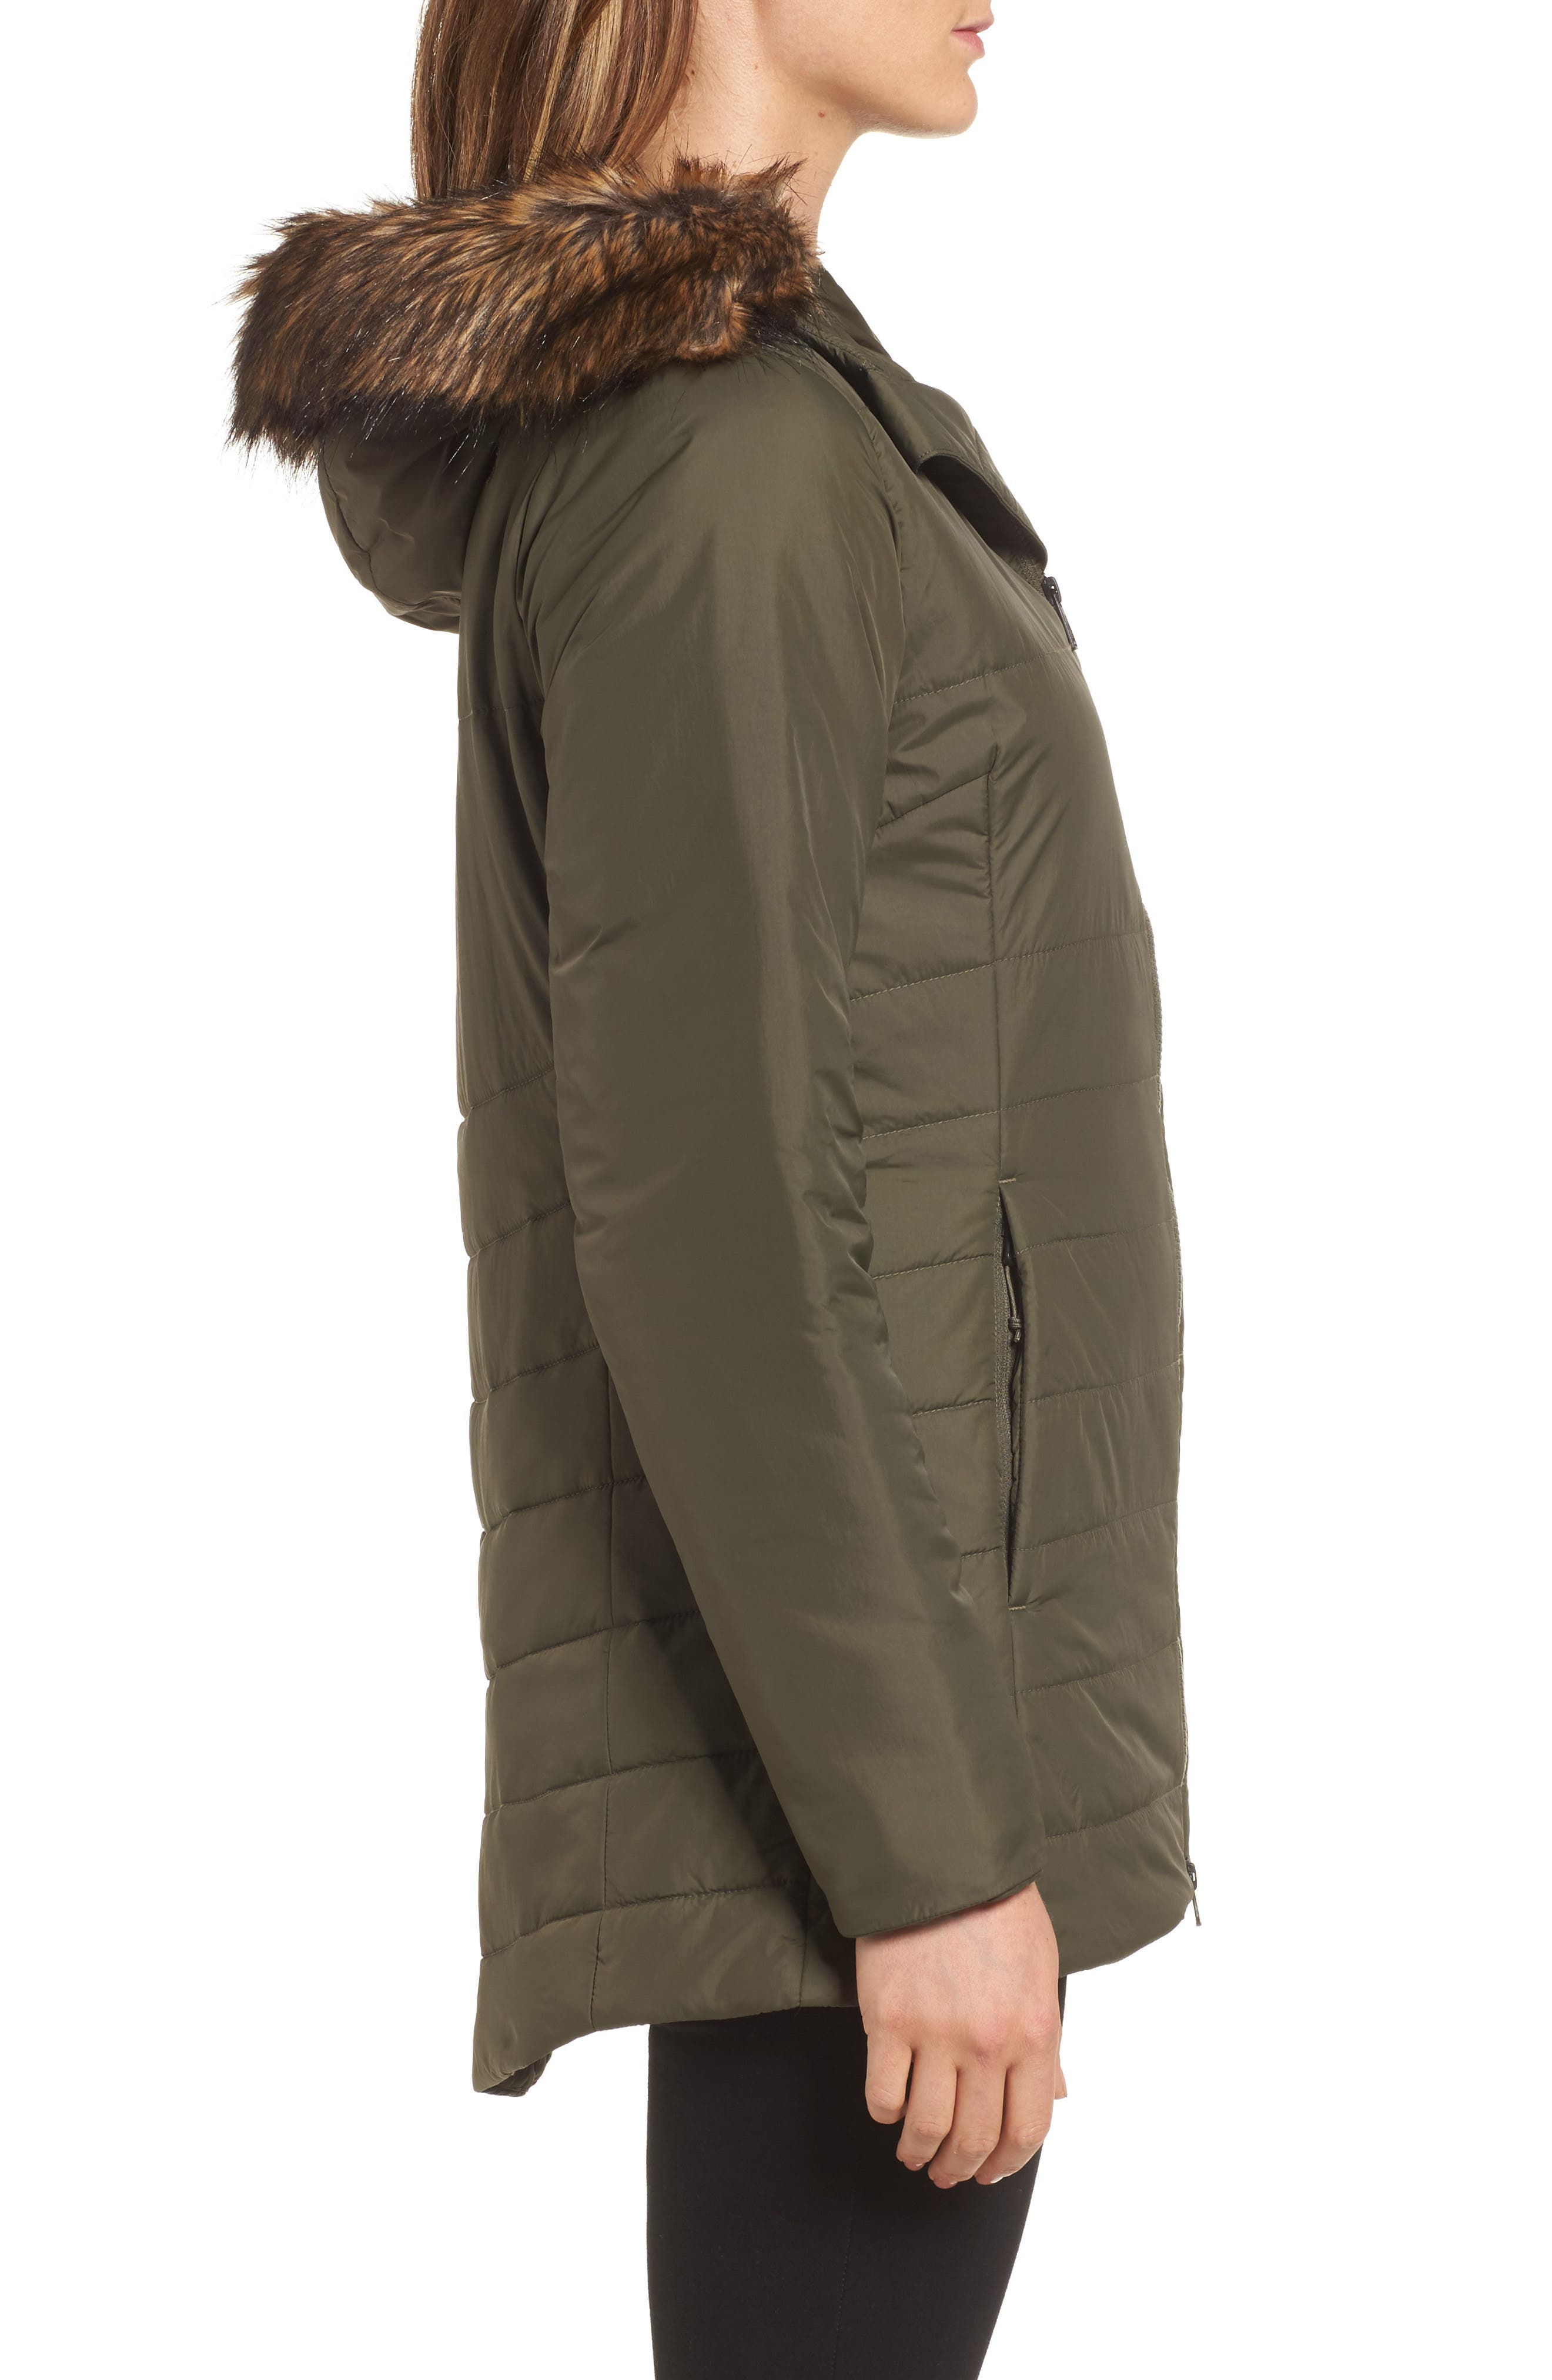 Harway Heatseeker<sup>™</sup> Water-Resistant Jacket with Faux Fur Trim,                             Alternate thumbnail 3, color,                             New Taupe Green